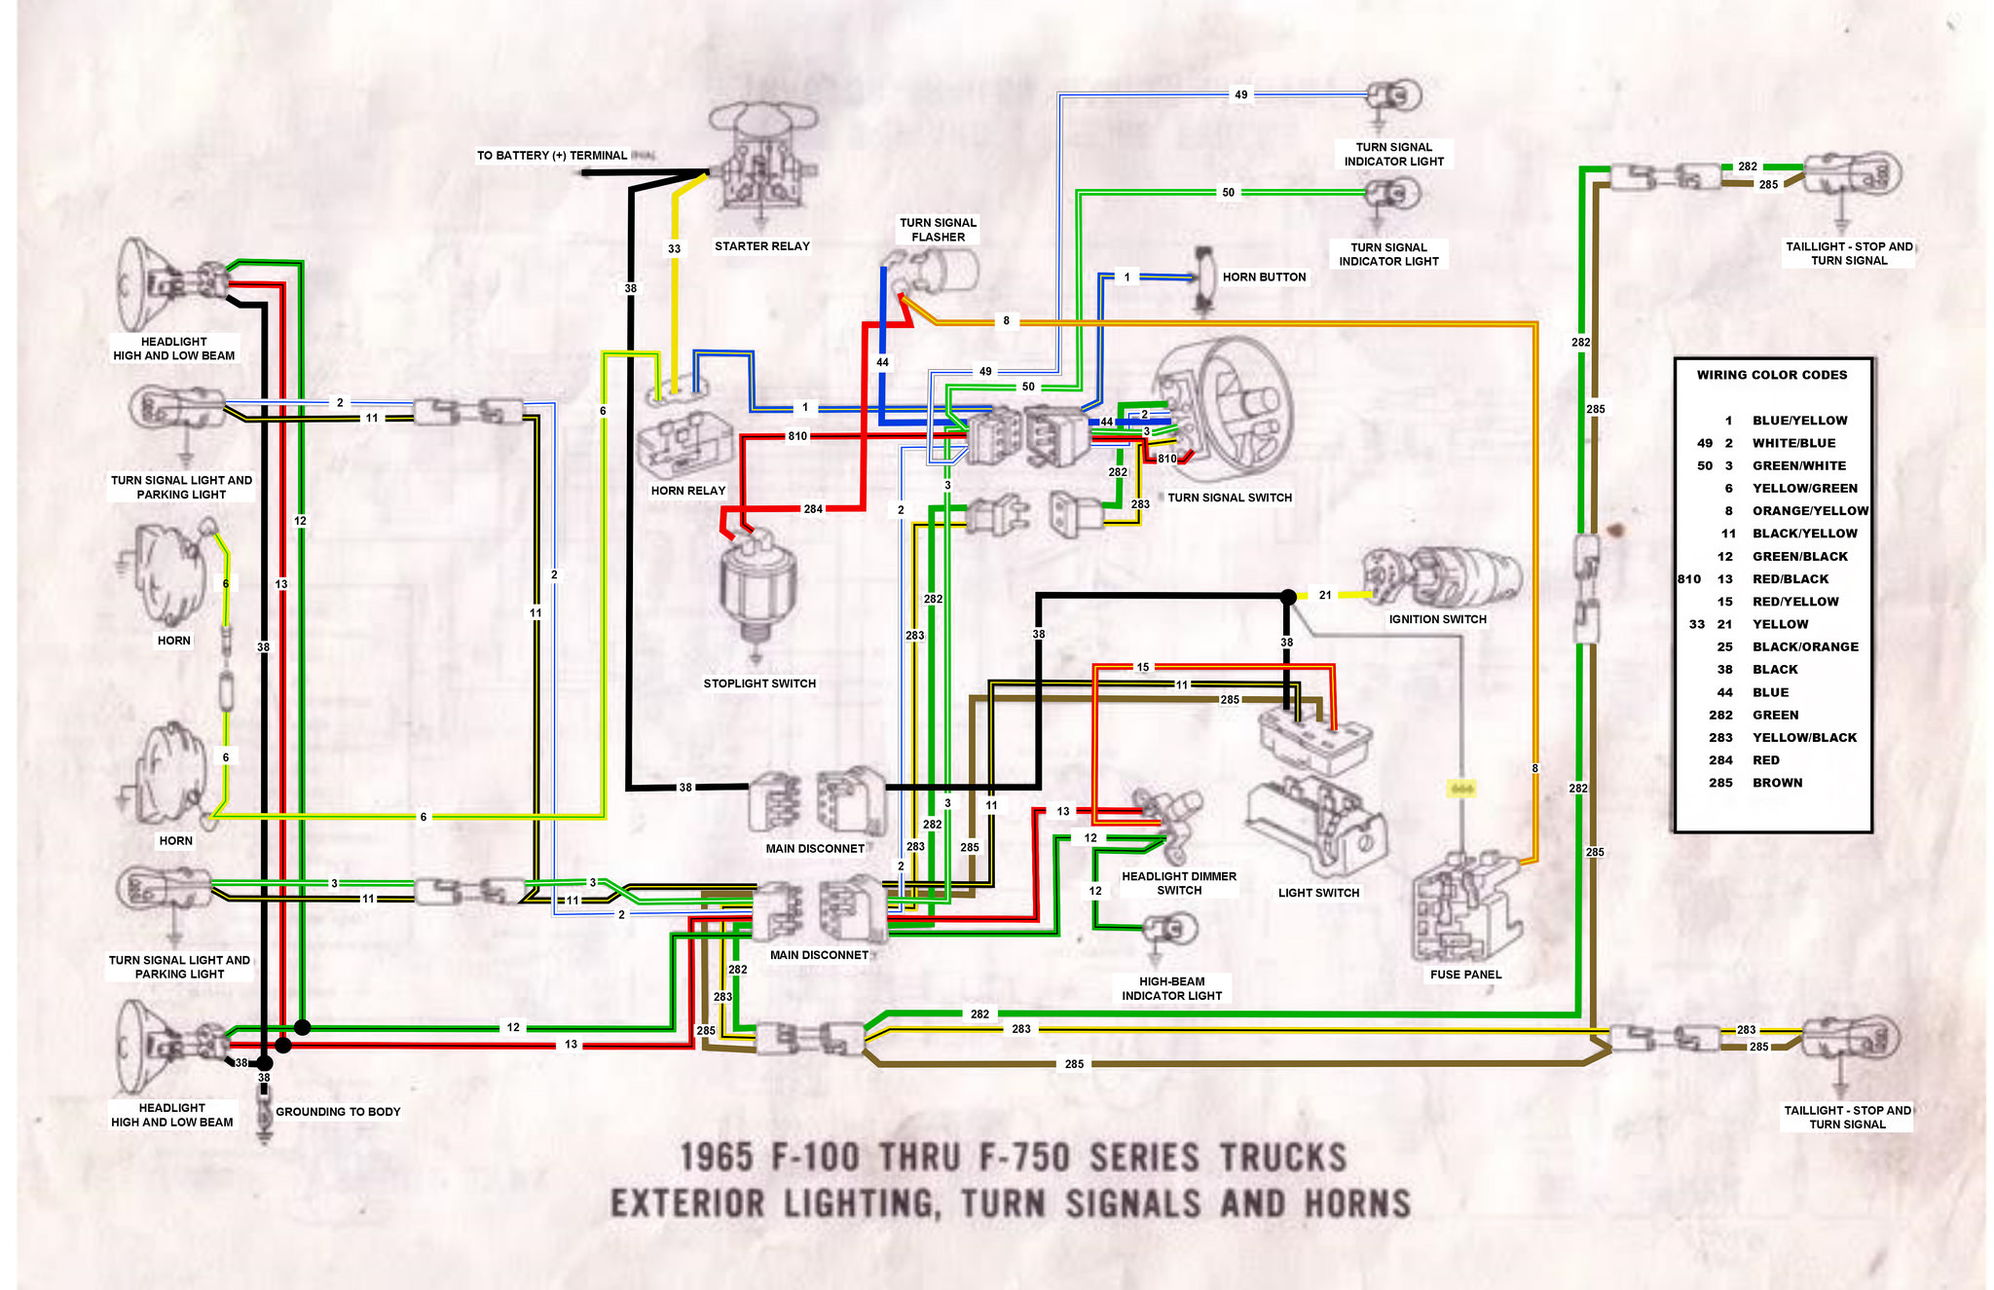 65 f100 thru f750 exterior wiring diagram ford truck